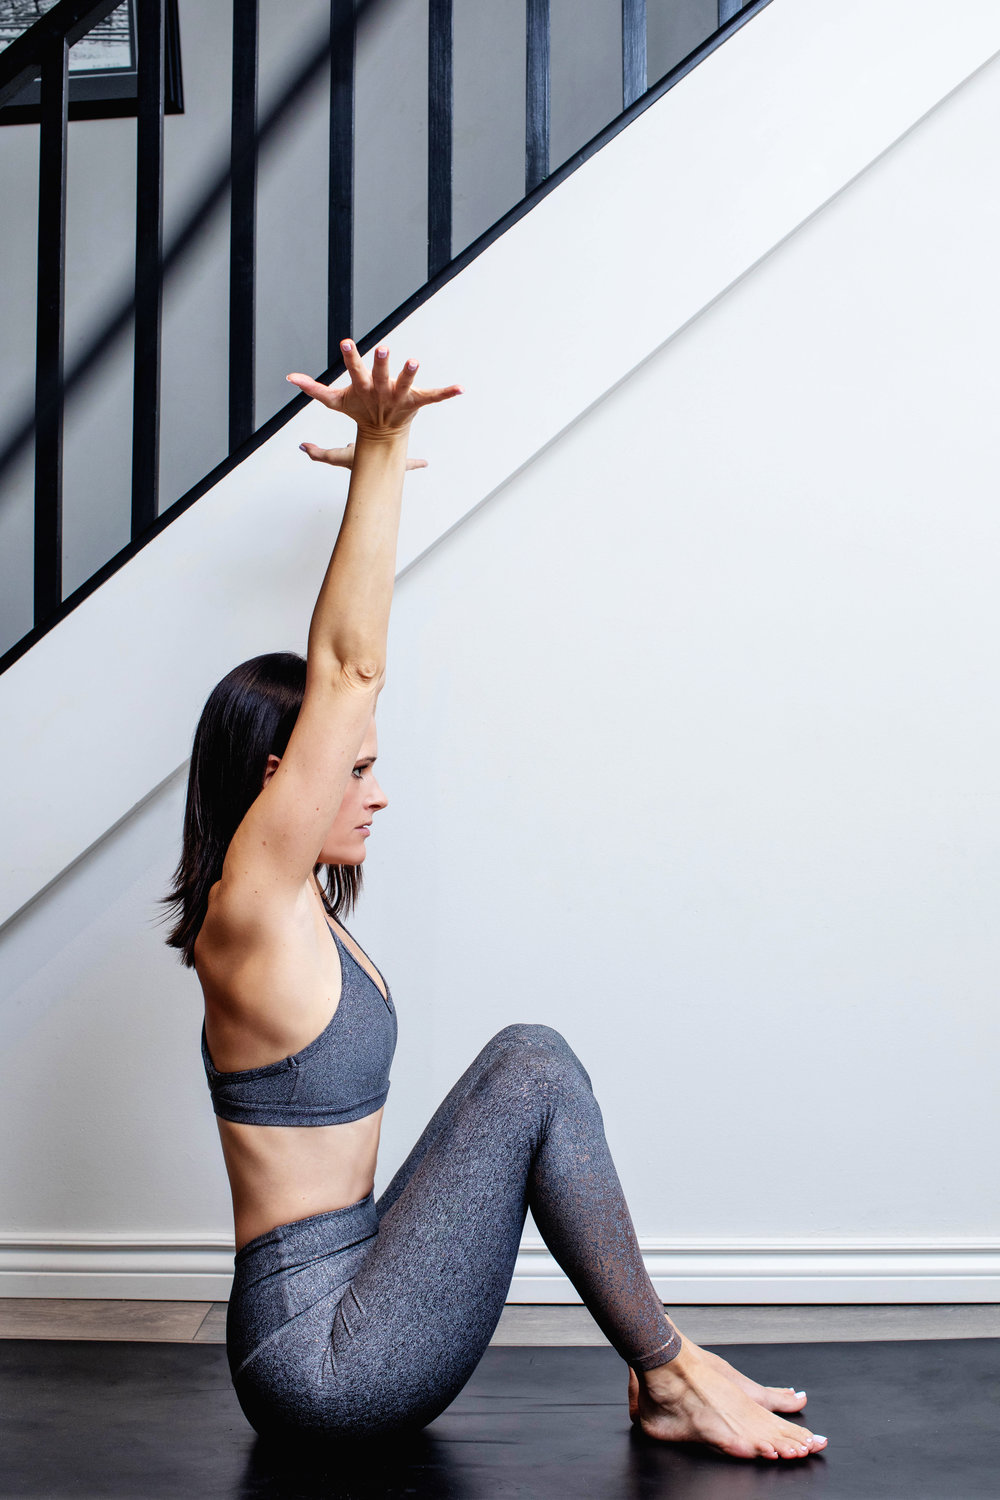 ELDOA™ T7-T8 - This pose opens up the space between the vertebral segments that your 7th and 8th ribs attach to (just behind and a little lower than your heart).